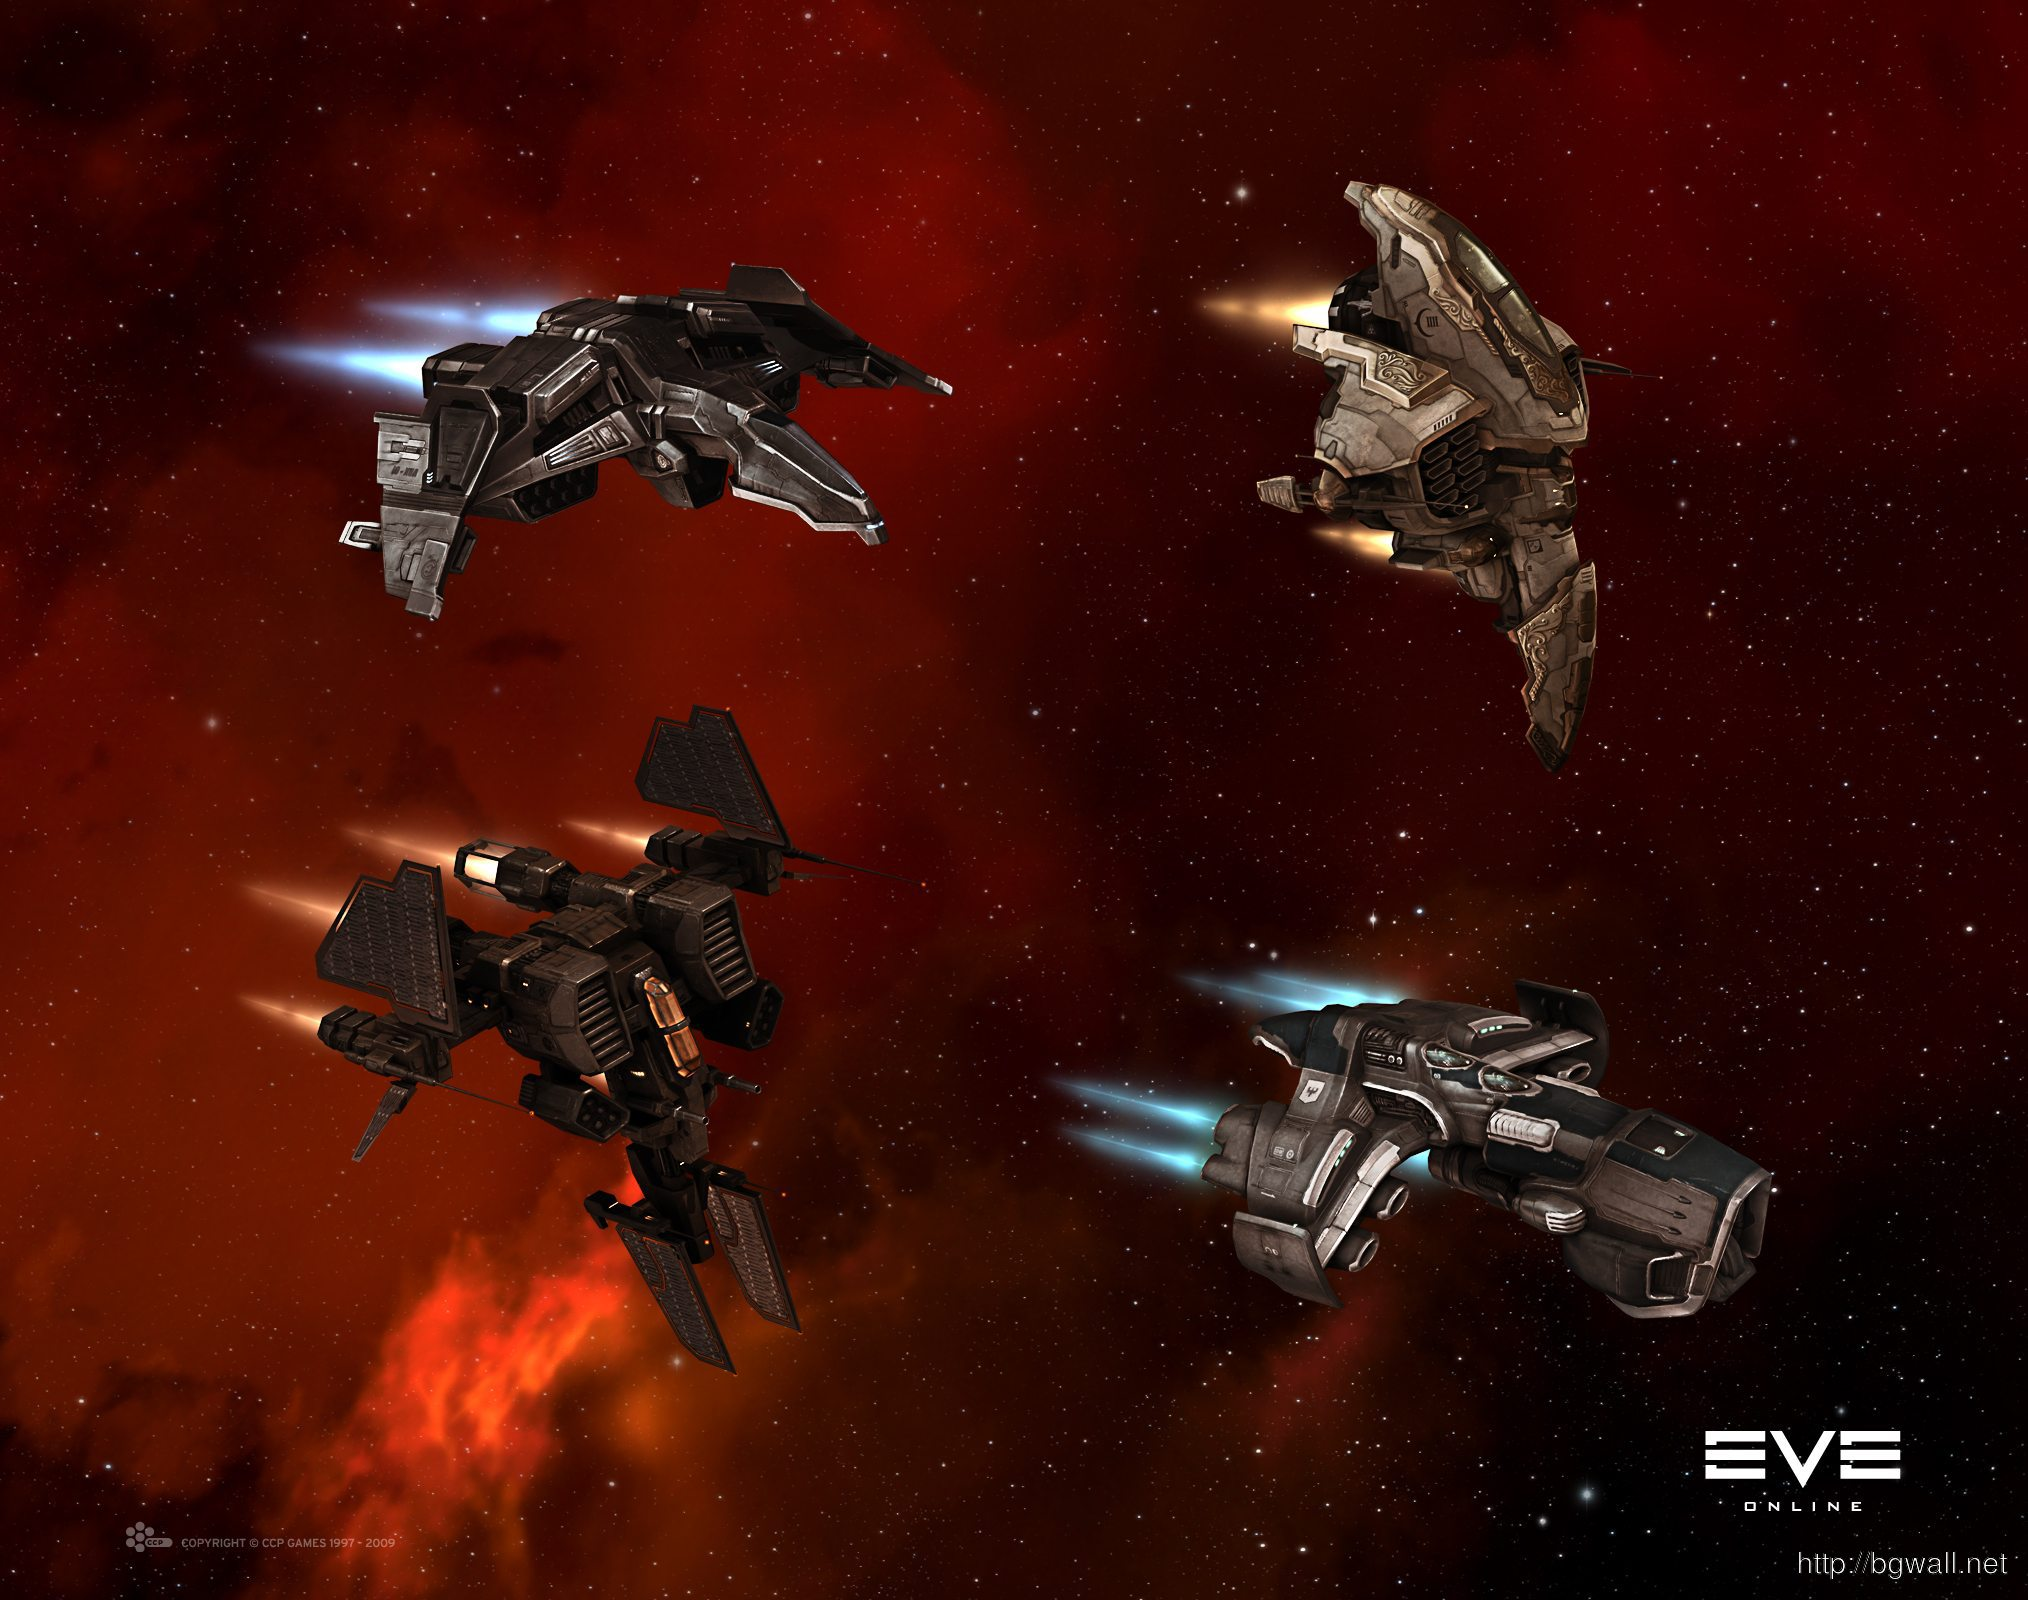 Eve Online Ships Wallpaper Hd Full Size